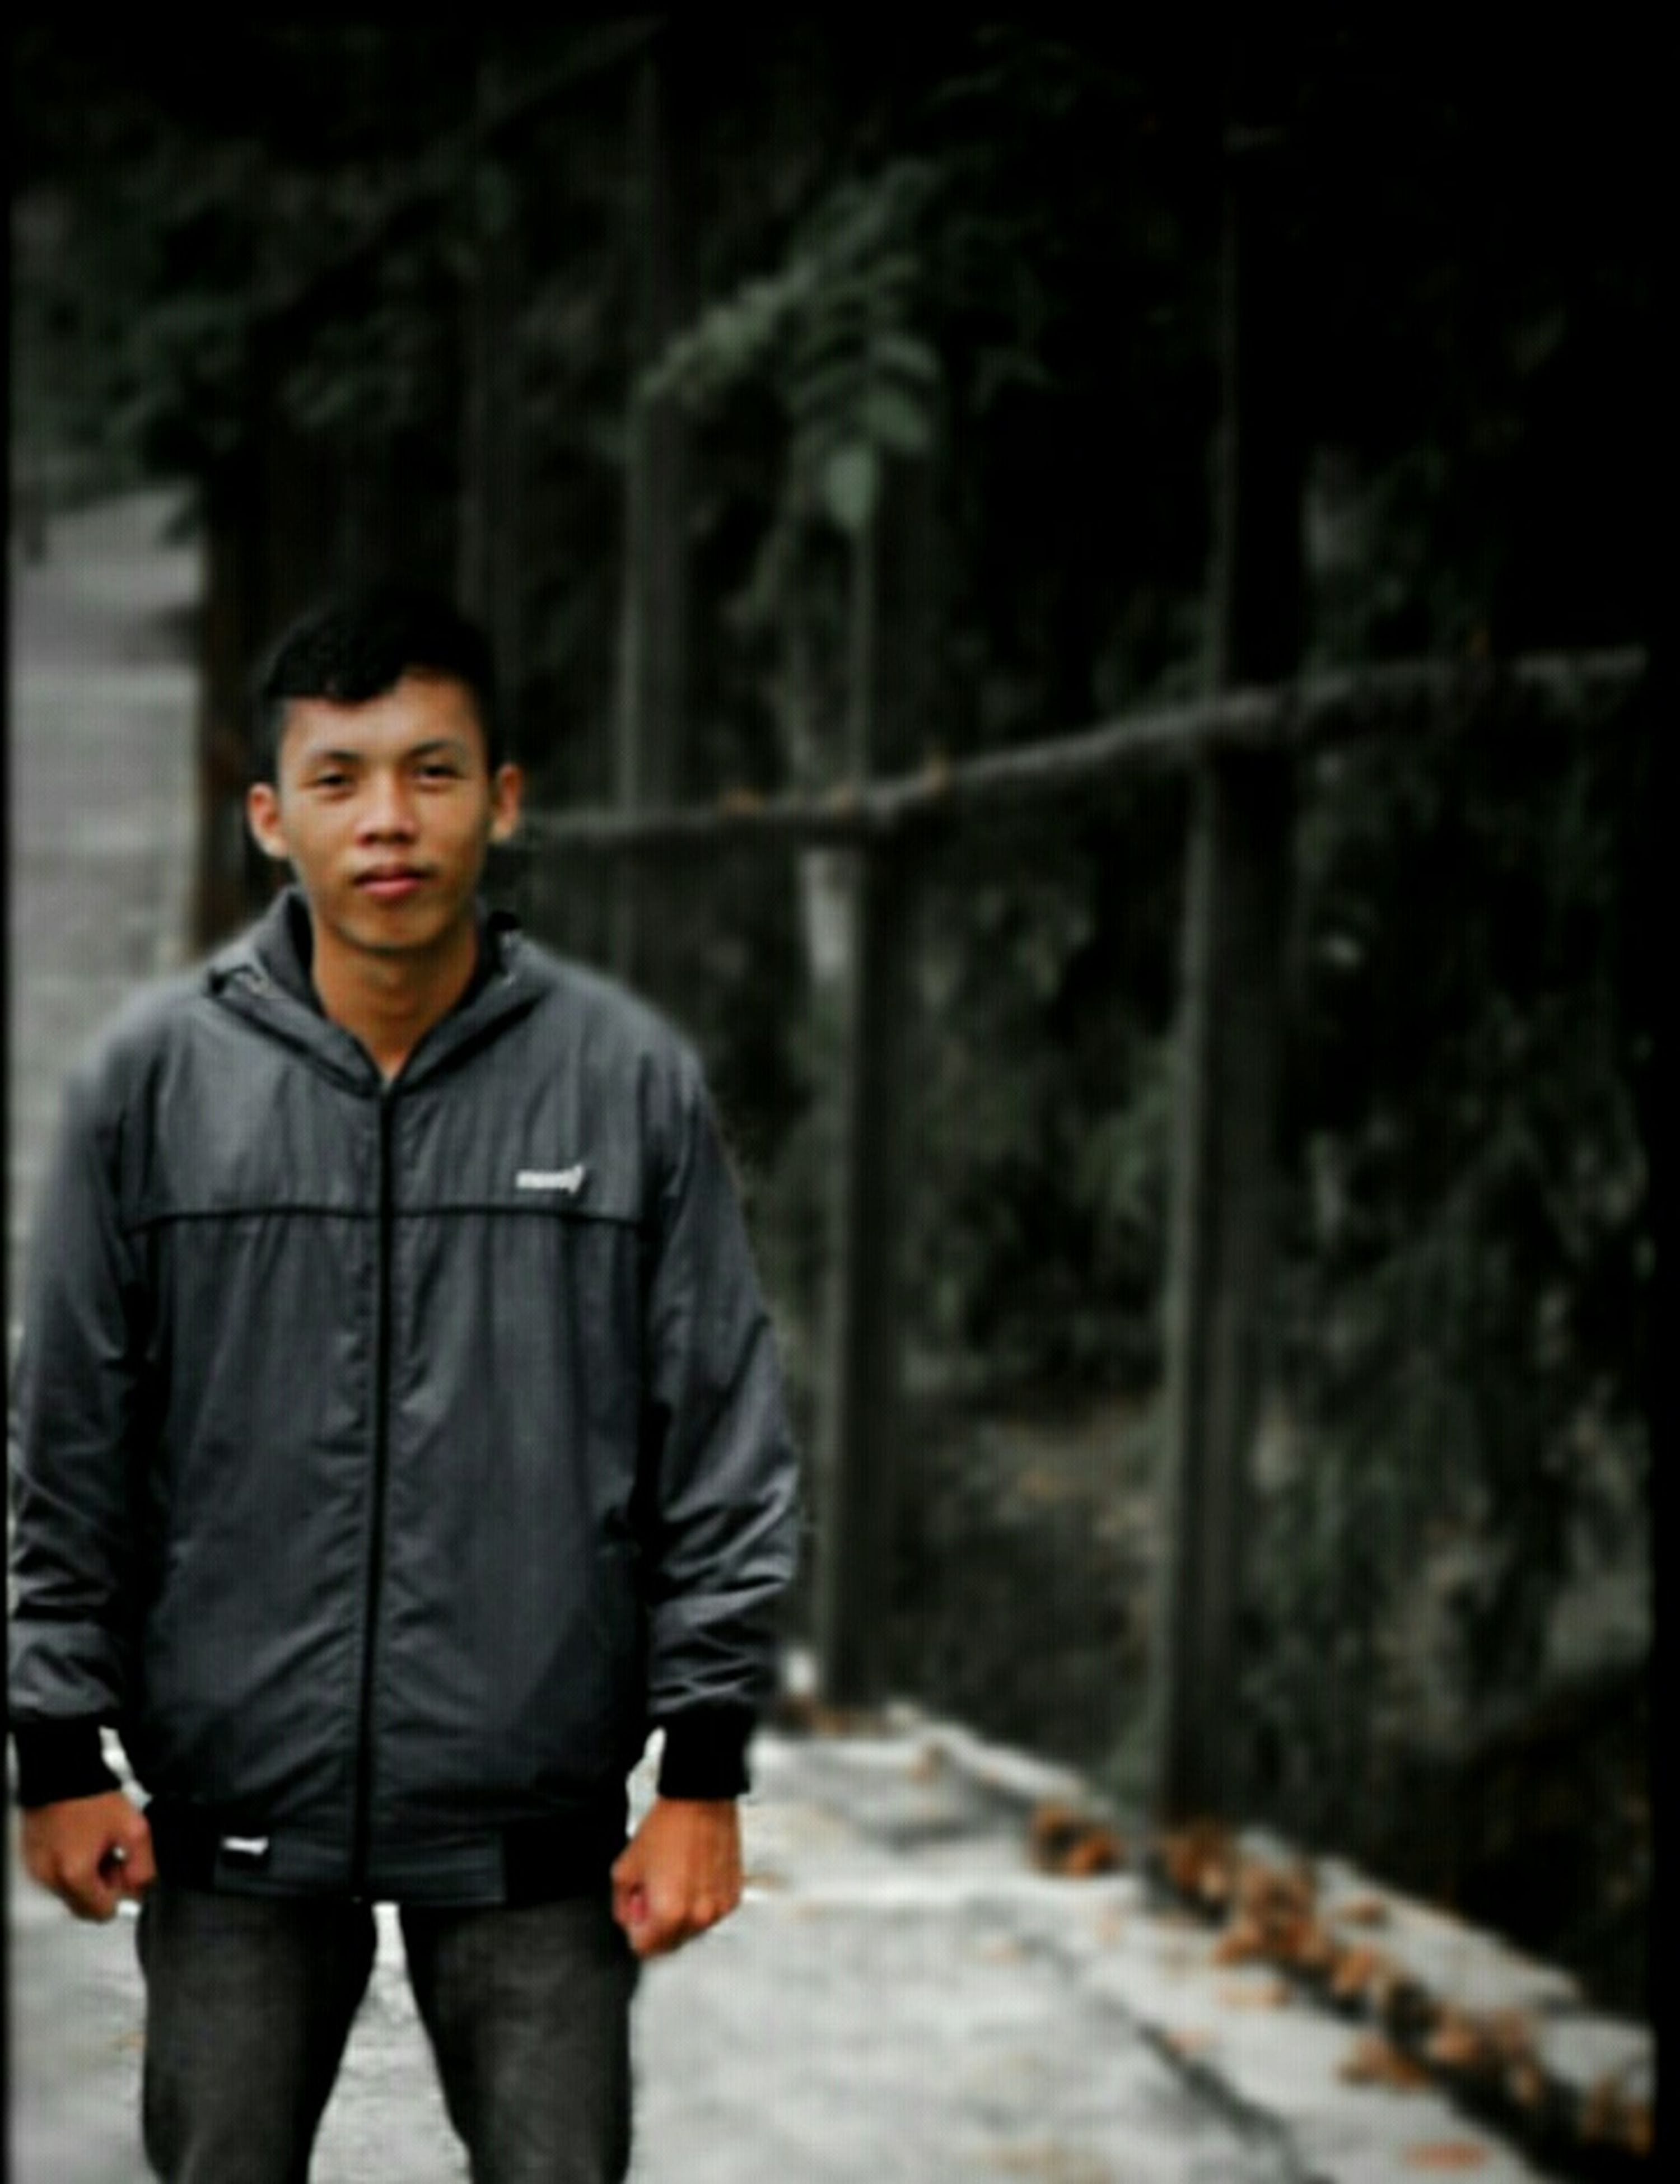 casual clothing, lifestyles, standing, leisure activity, full length, warm clothing, jacket, looking at camera, hands in pockets, front view, portrait, person, walking, young men, rear view, tree, focus on foreground, young adult